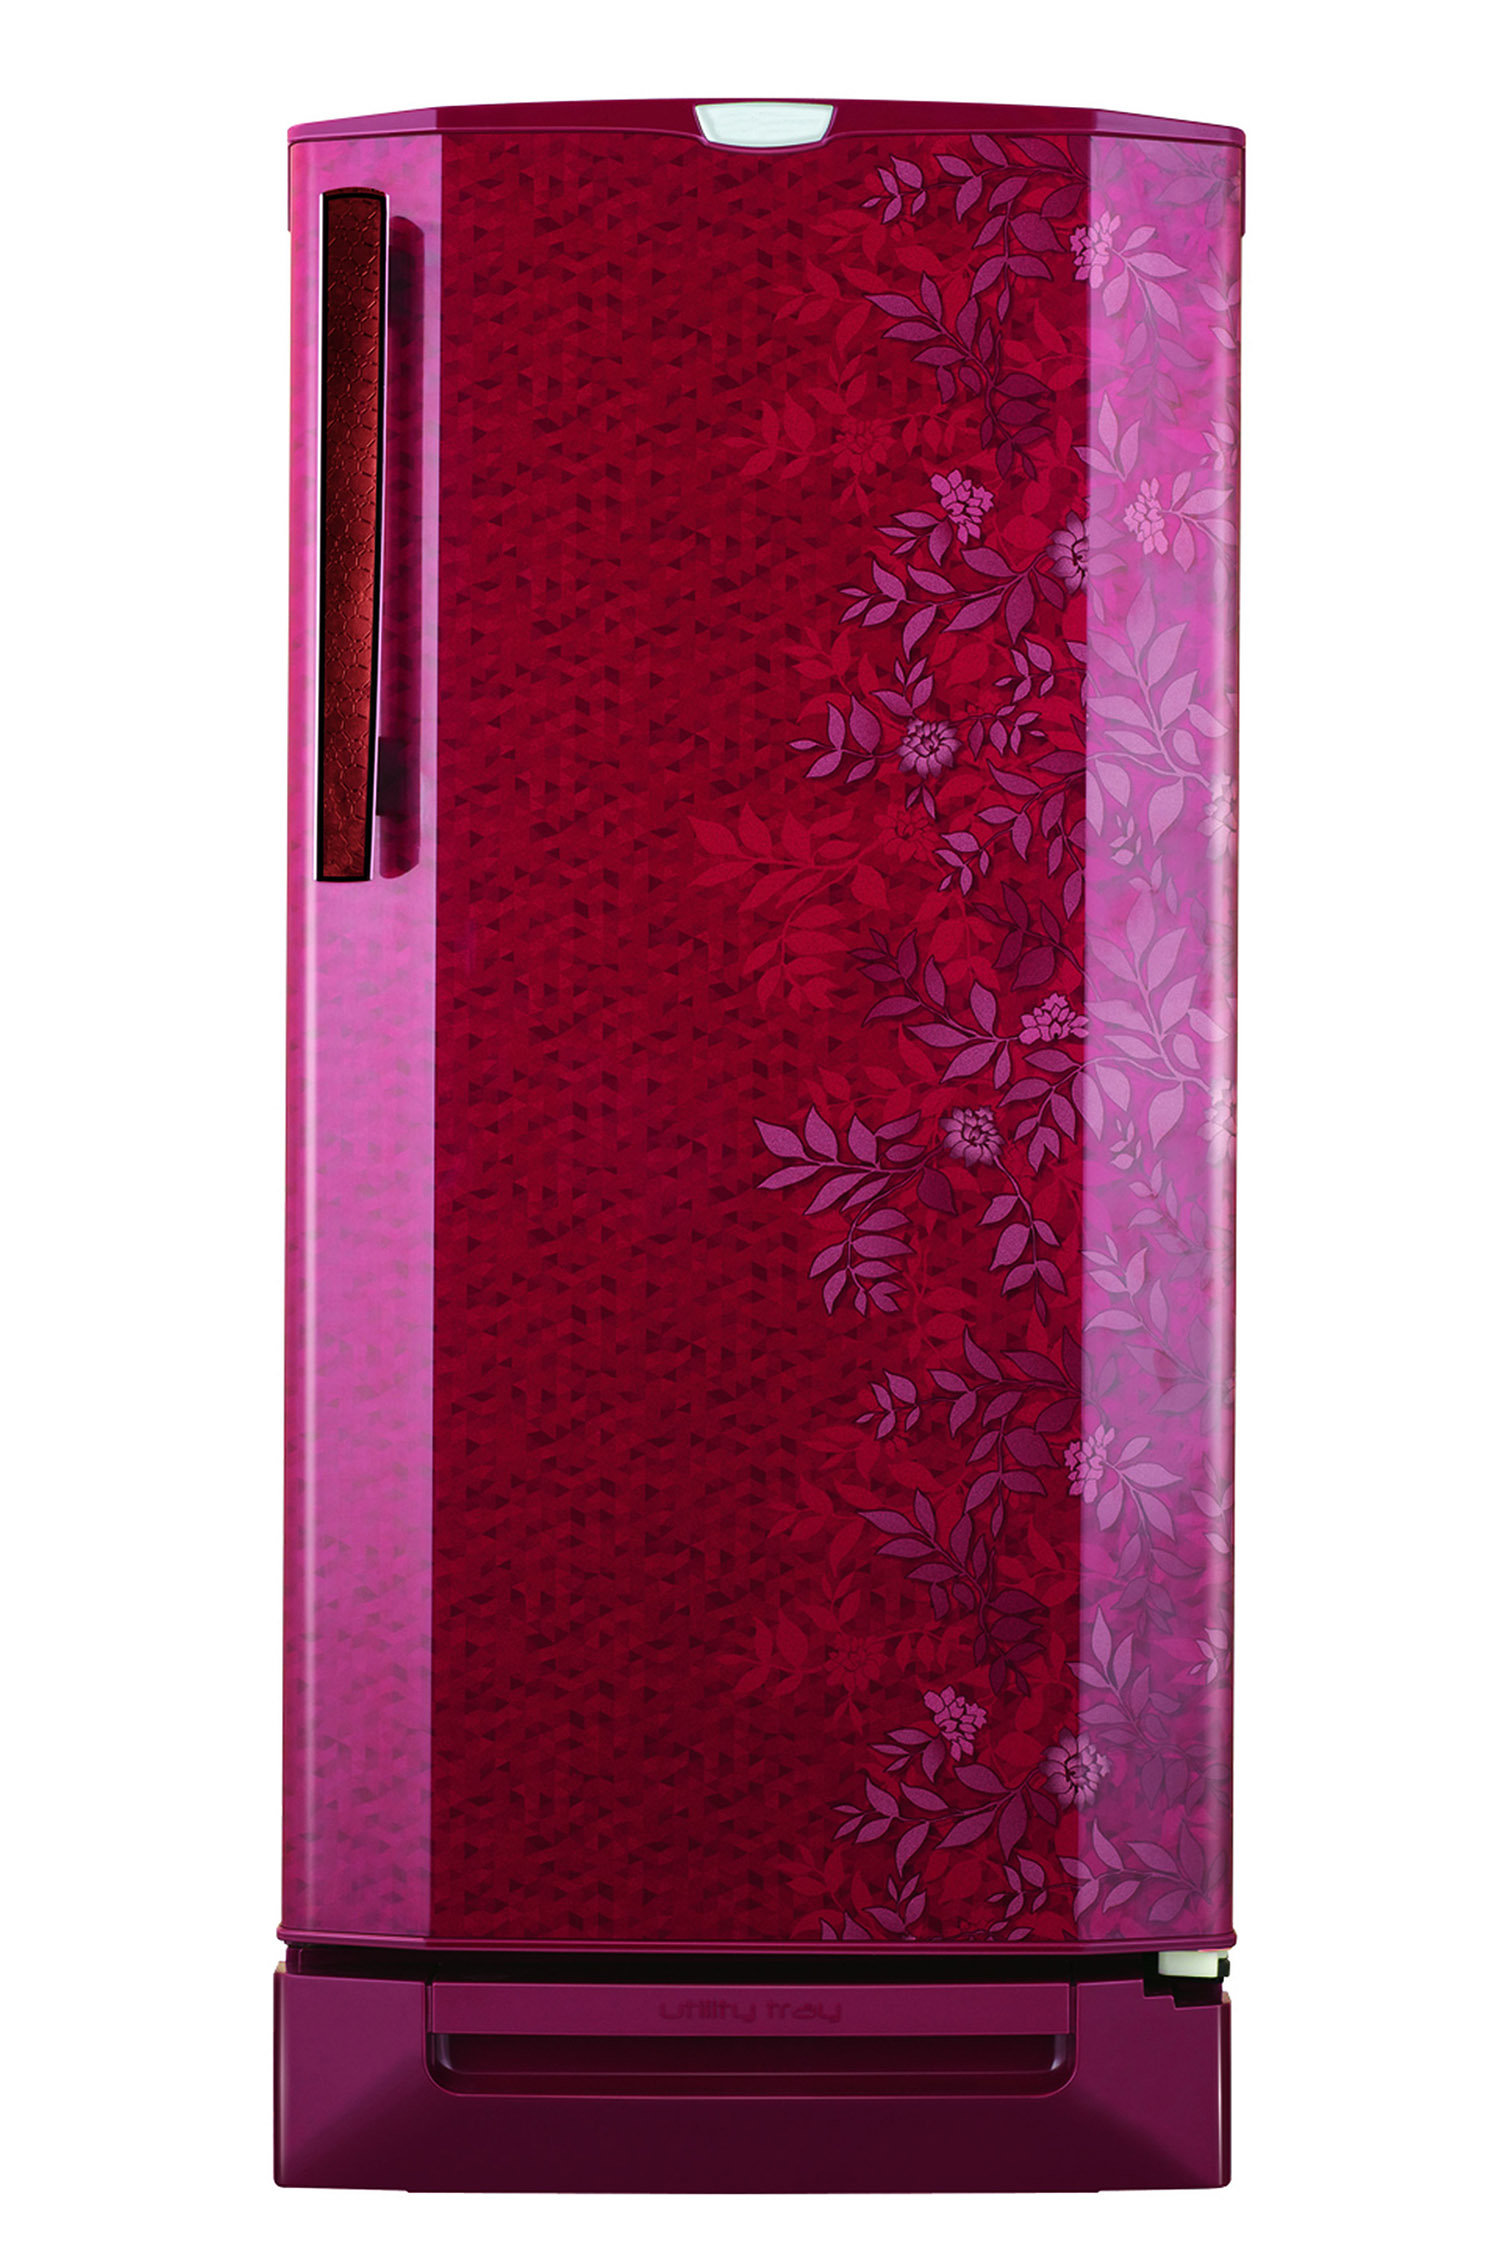 Decorative refrigerator in pink